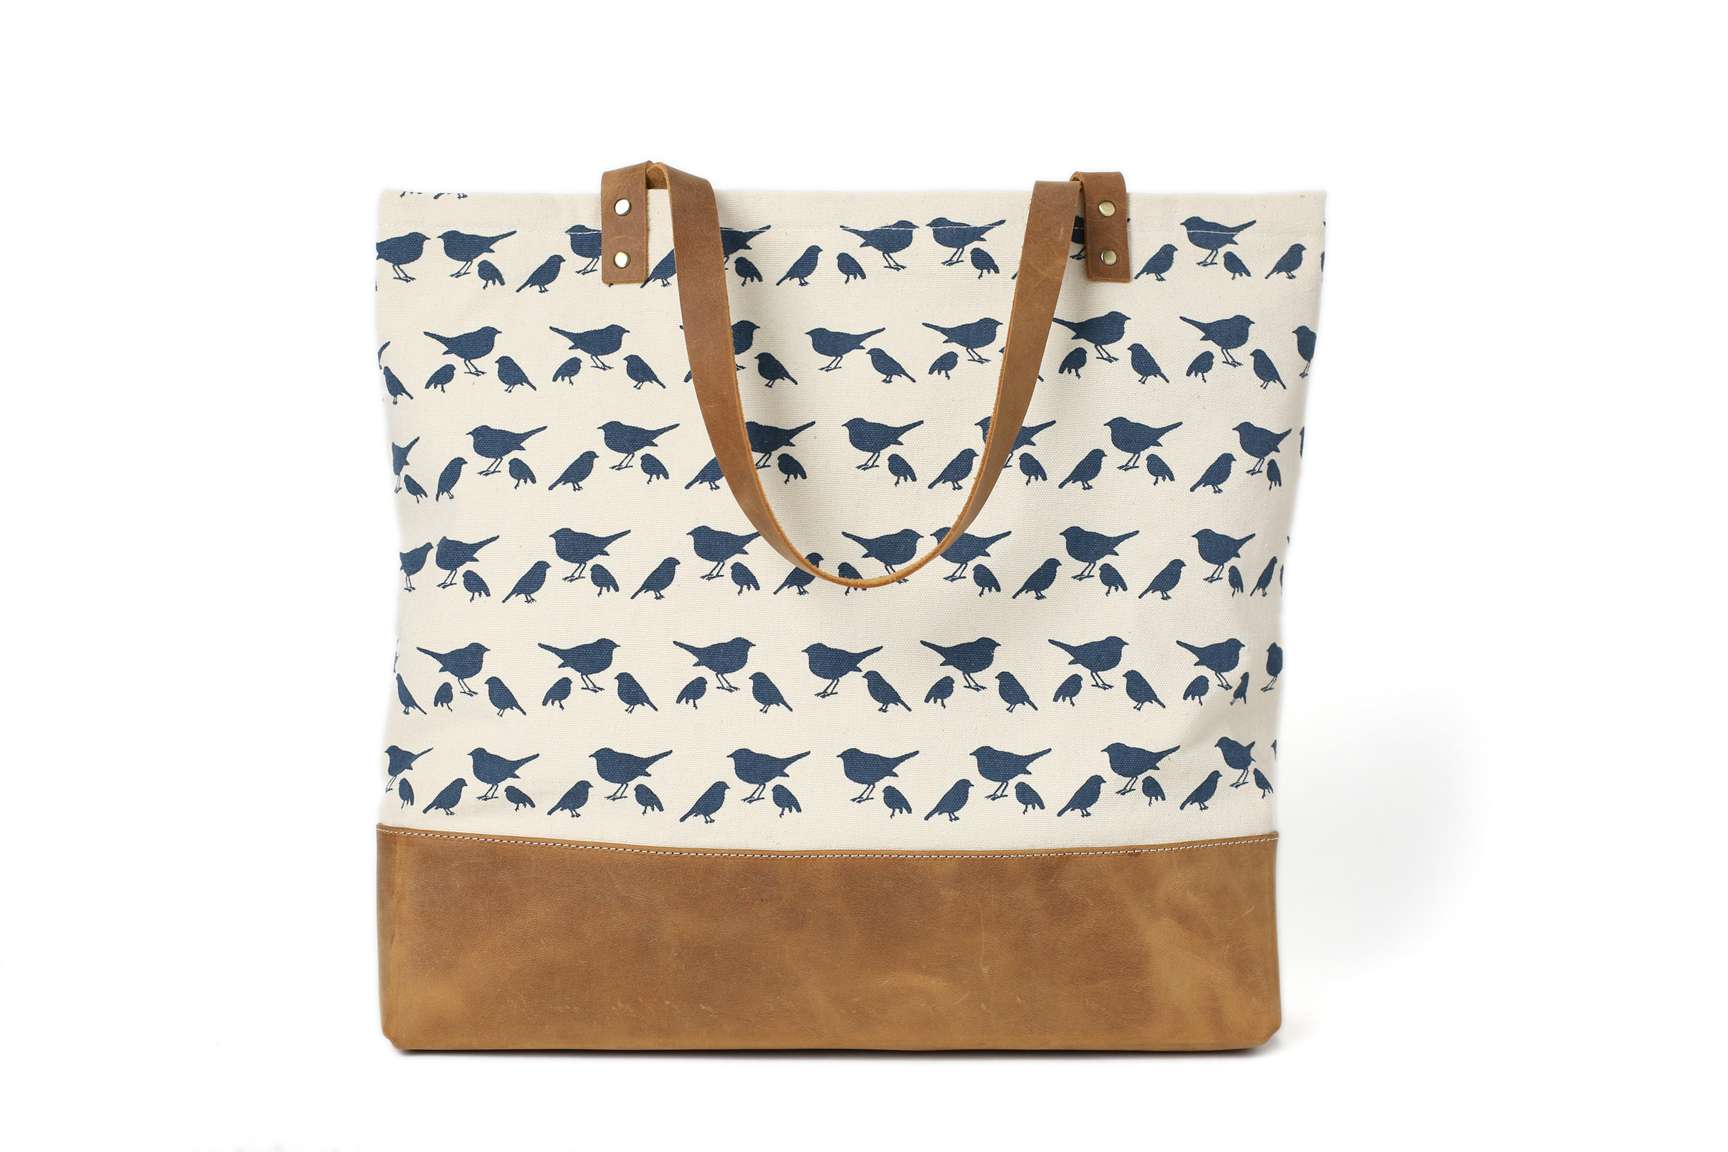 a018d4b0ed66 MoshiLeatherBag - Handmade Leather Bag Manufacturer — Handmade Canvas Tote  Bags with Leather Trimming